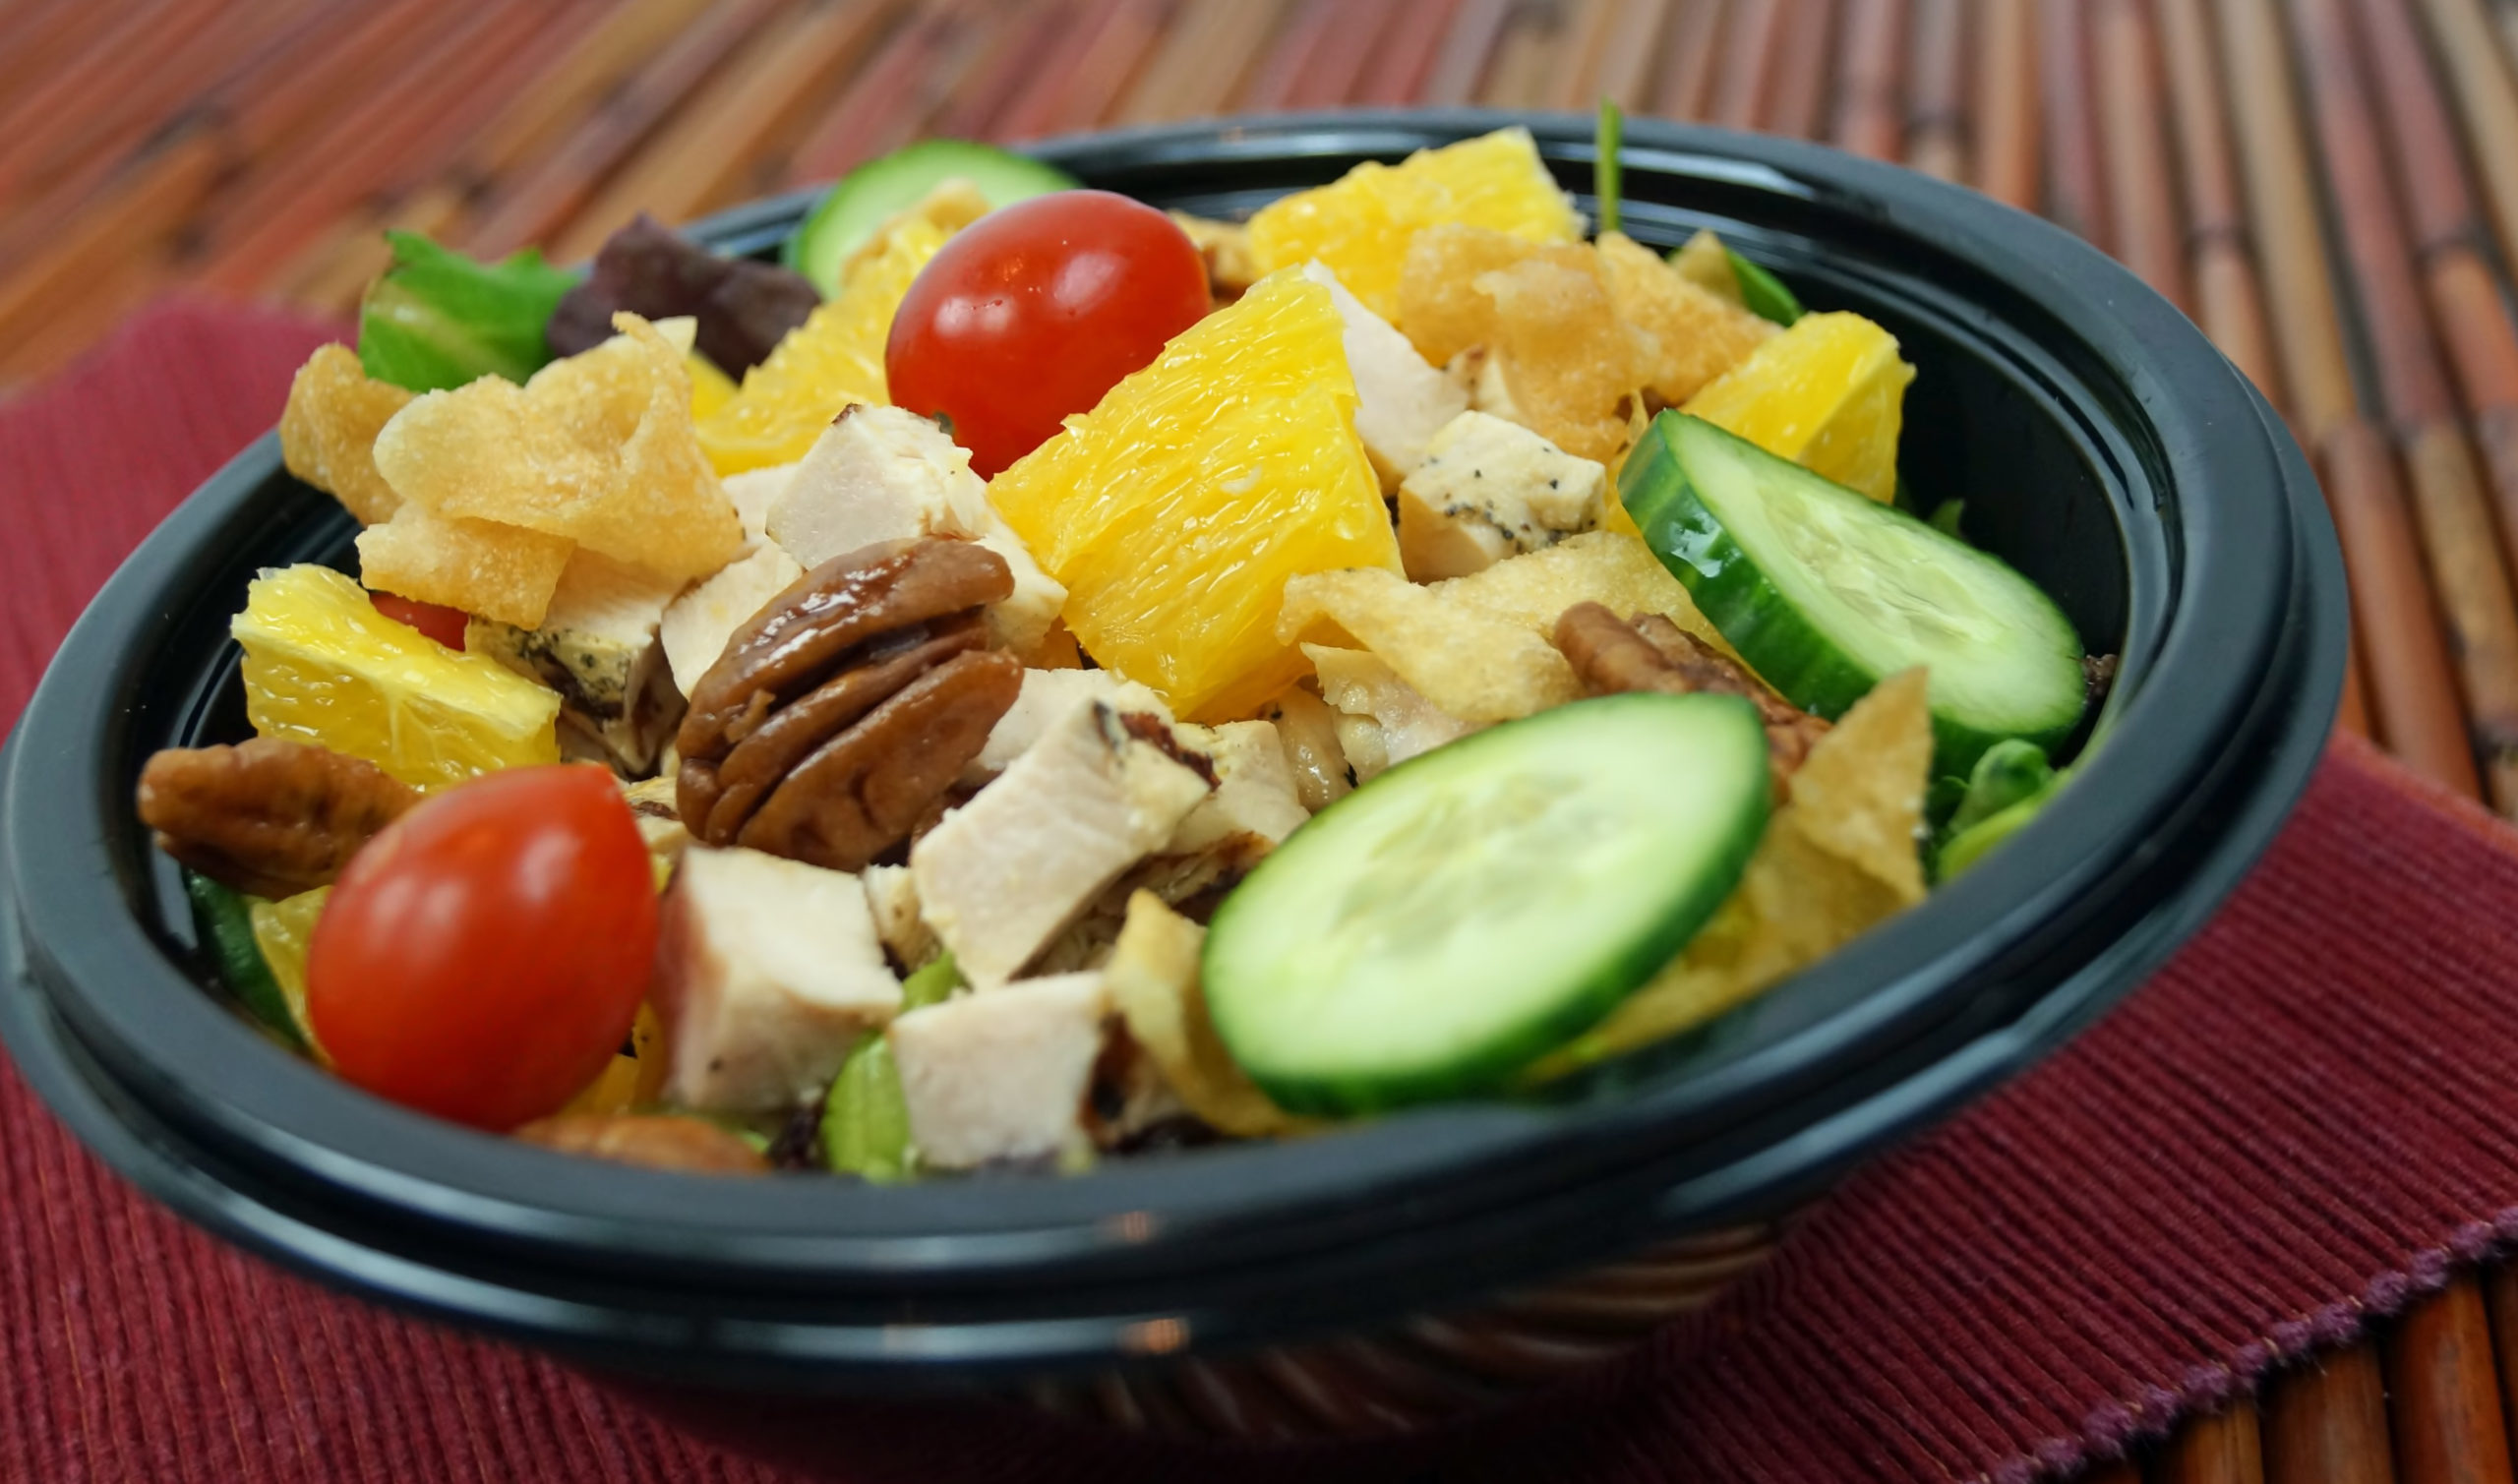 A bowl of salad in a take out container